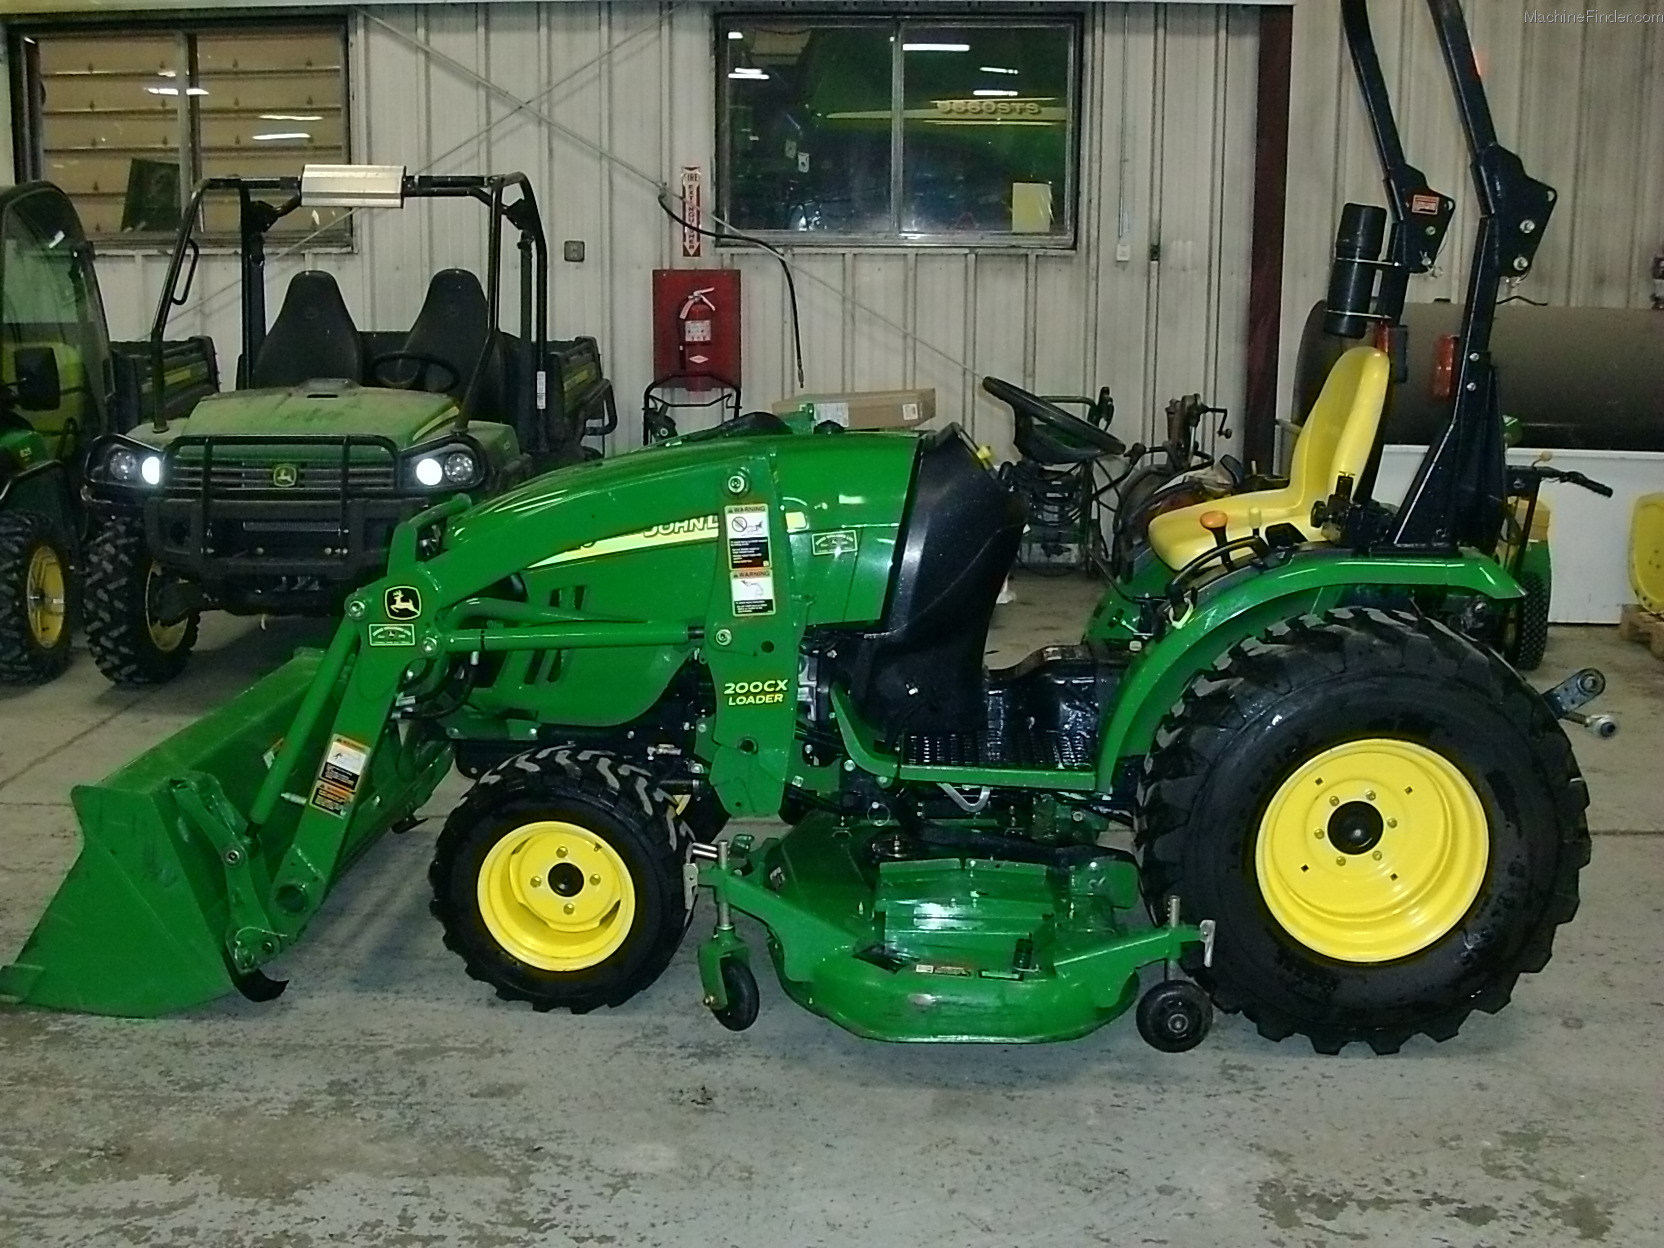 John Deere 2520 Compact Utility Tractor Pictures to pin on Pinterest